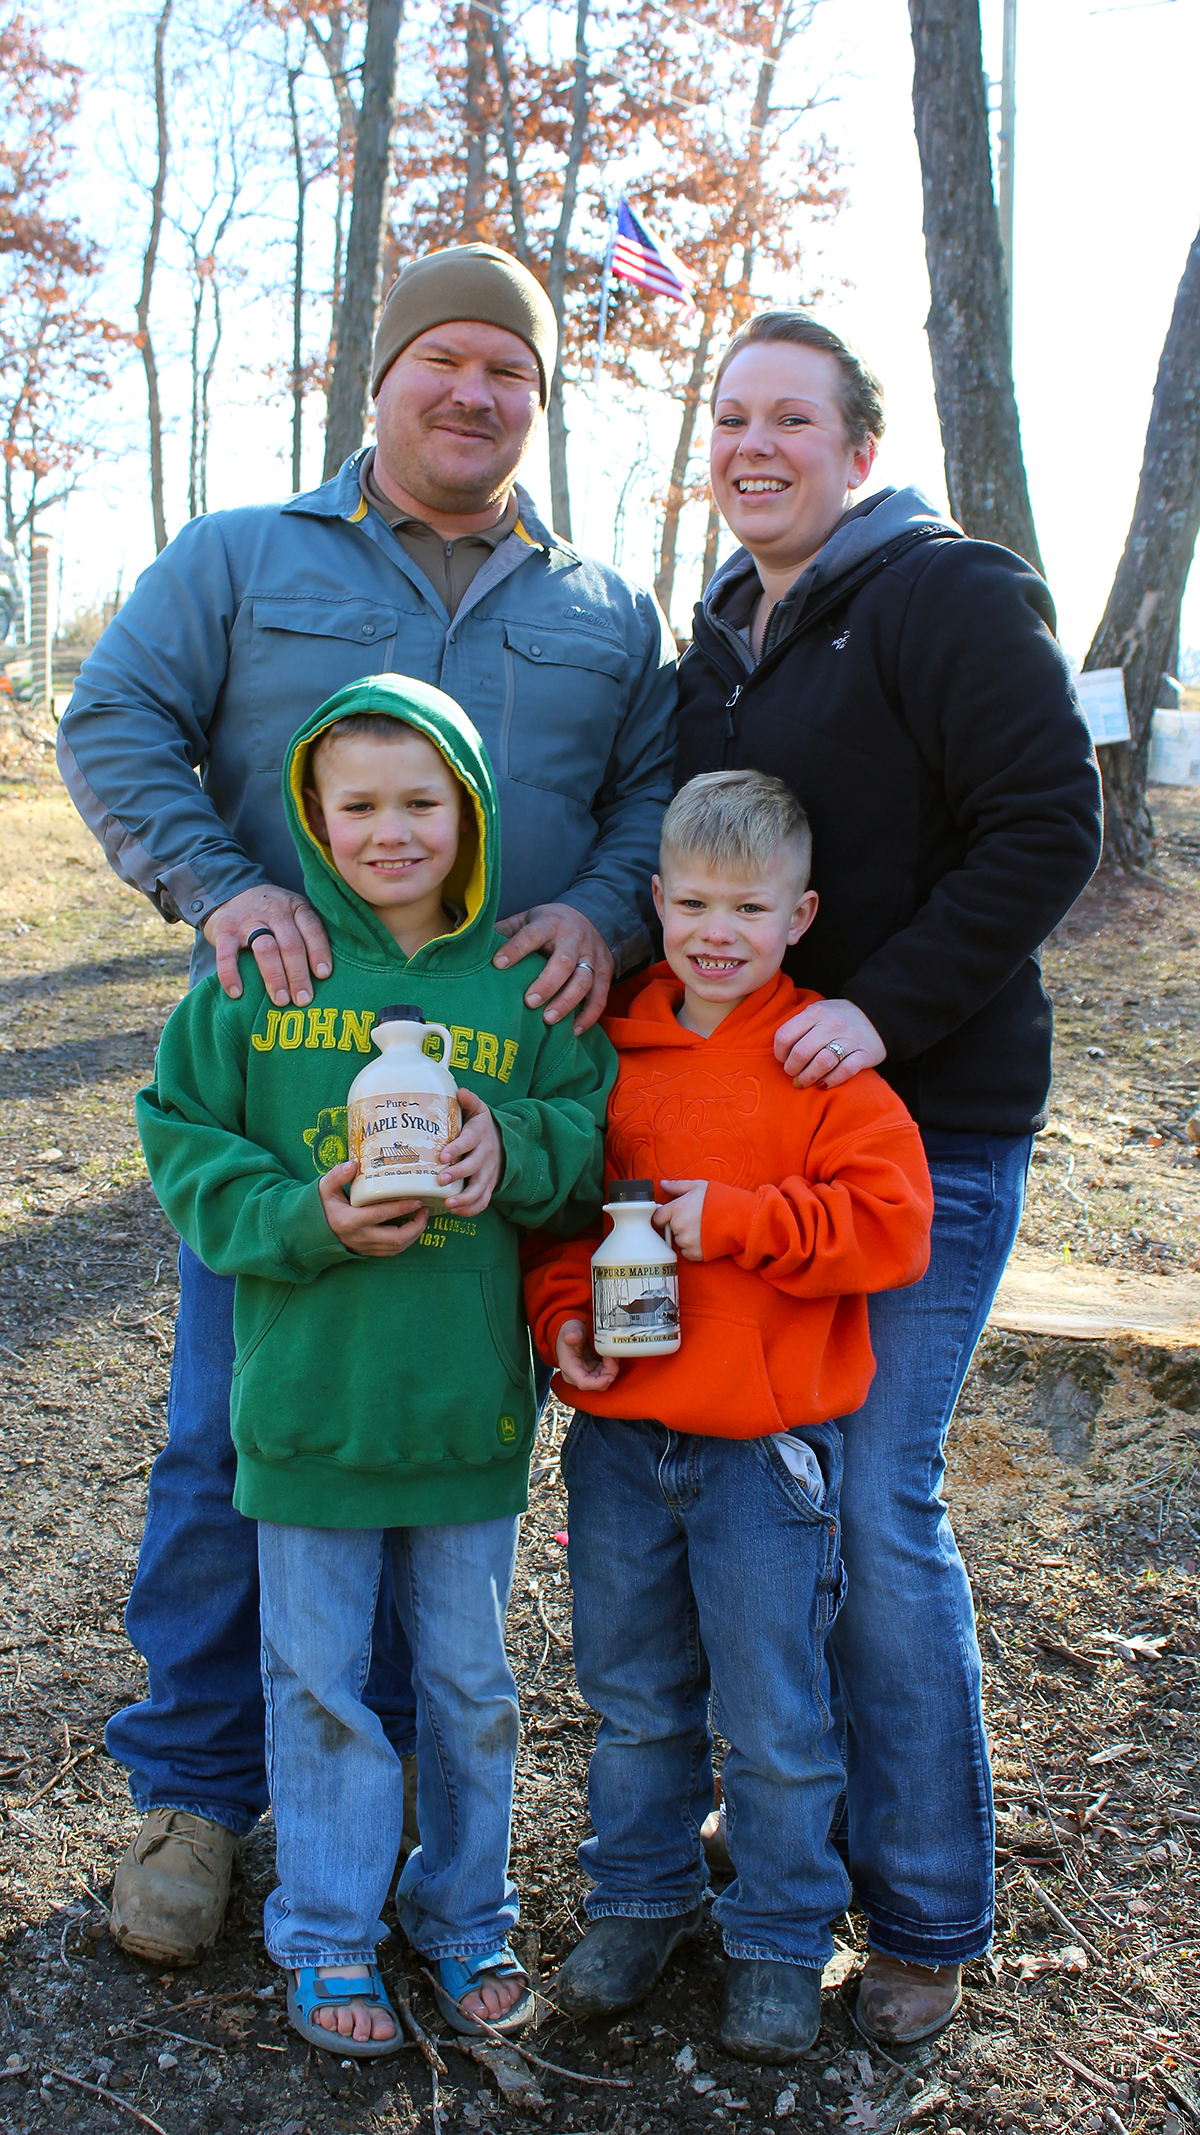 Marine veteran Jeremy Beaver and his family make and sell maple syrup near Mark Twain Lake. Beaver is one of 300,000 post-9/11 veterans expected to return to Missouri in the next decade.